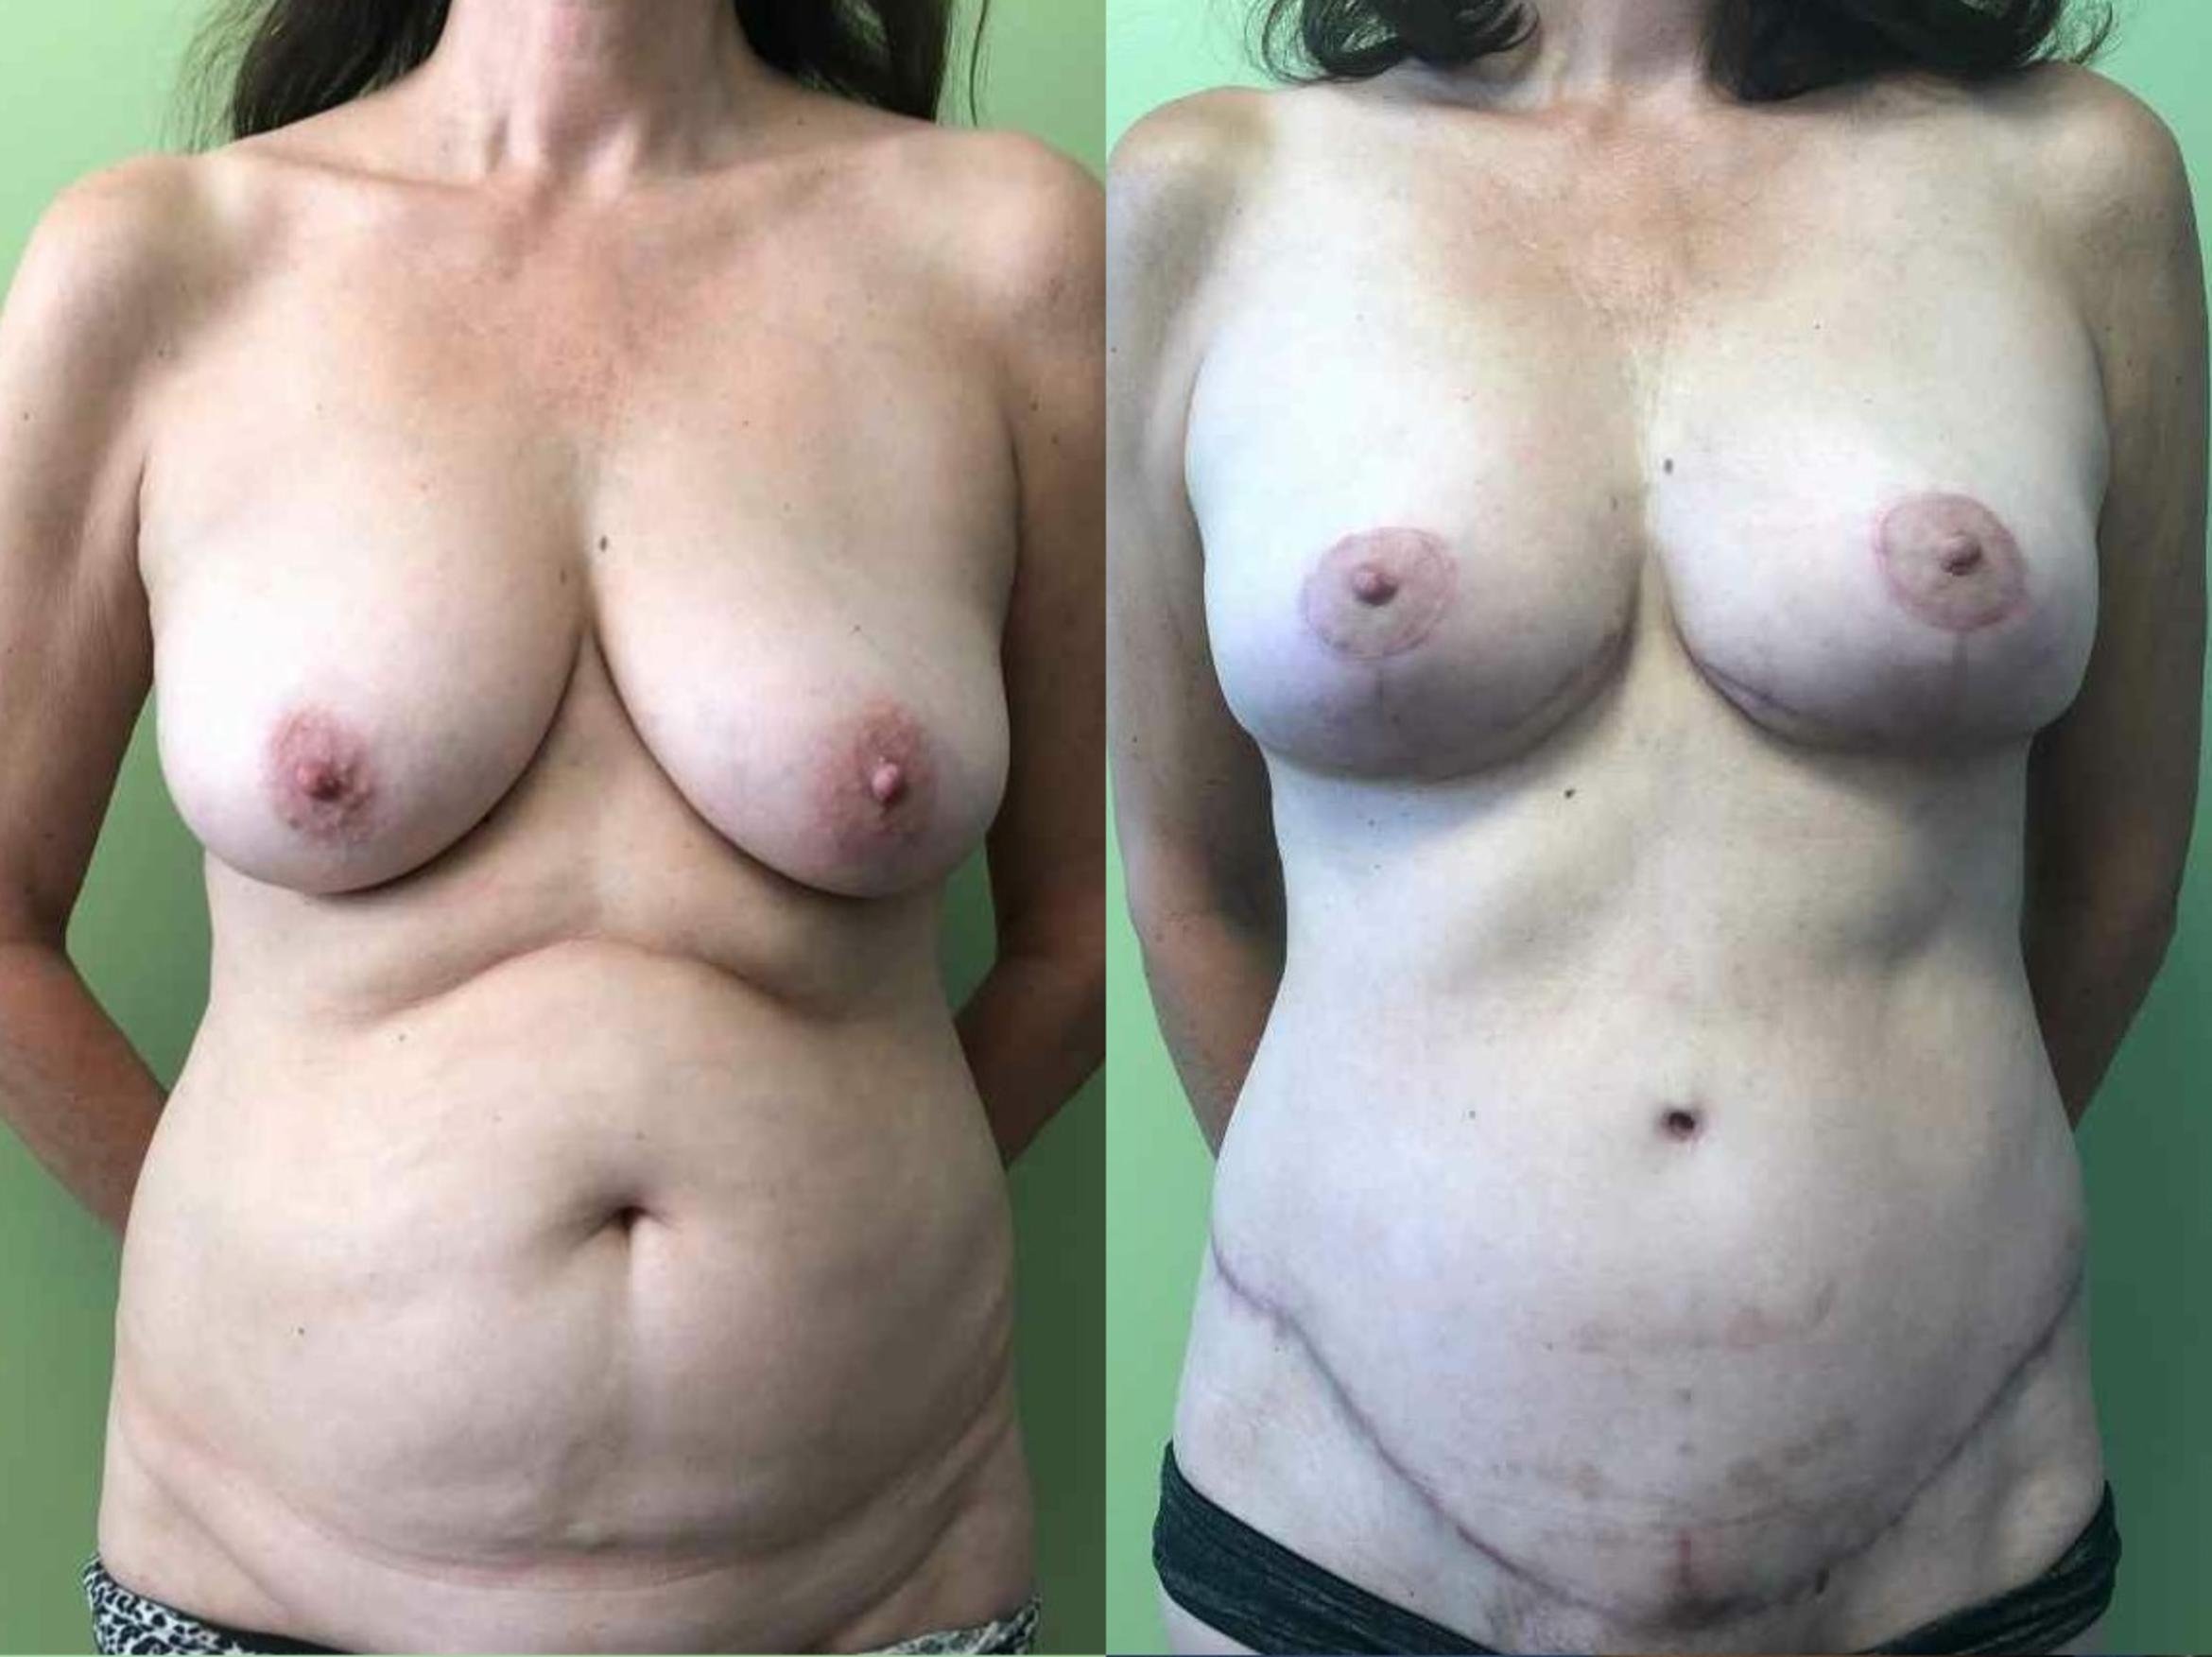 Tummy Tuck Before & After Photo | San Francisco, CA | Kaiser Permanente Cosmetic Services